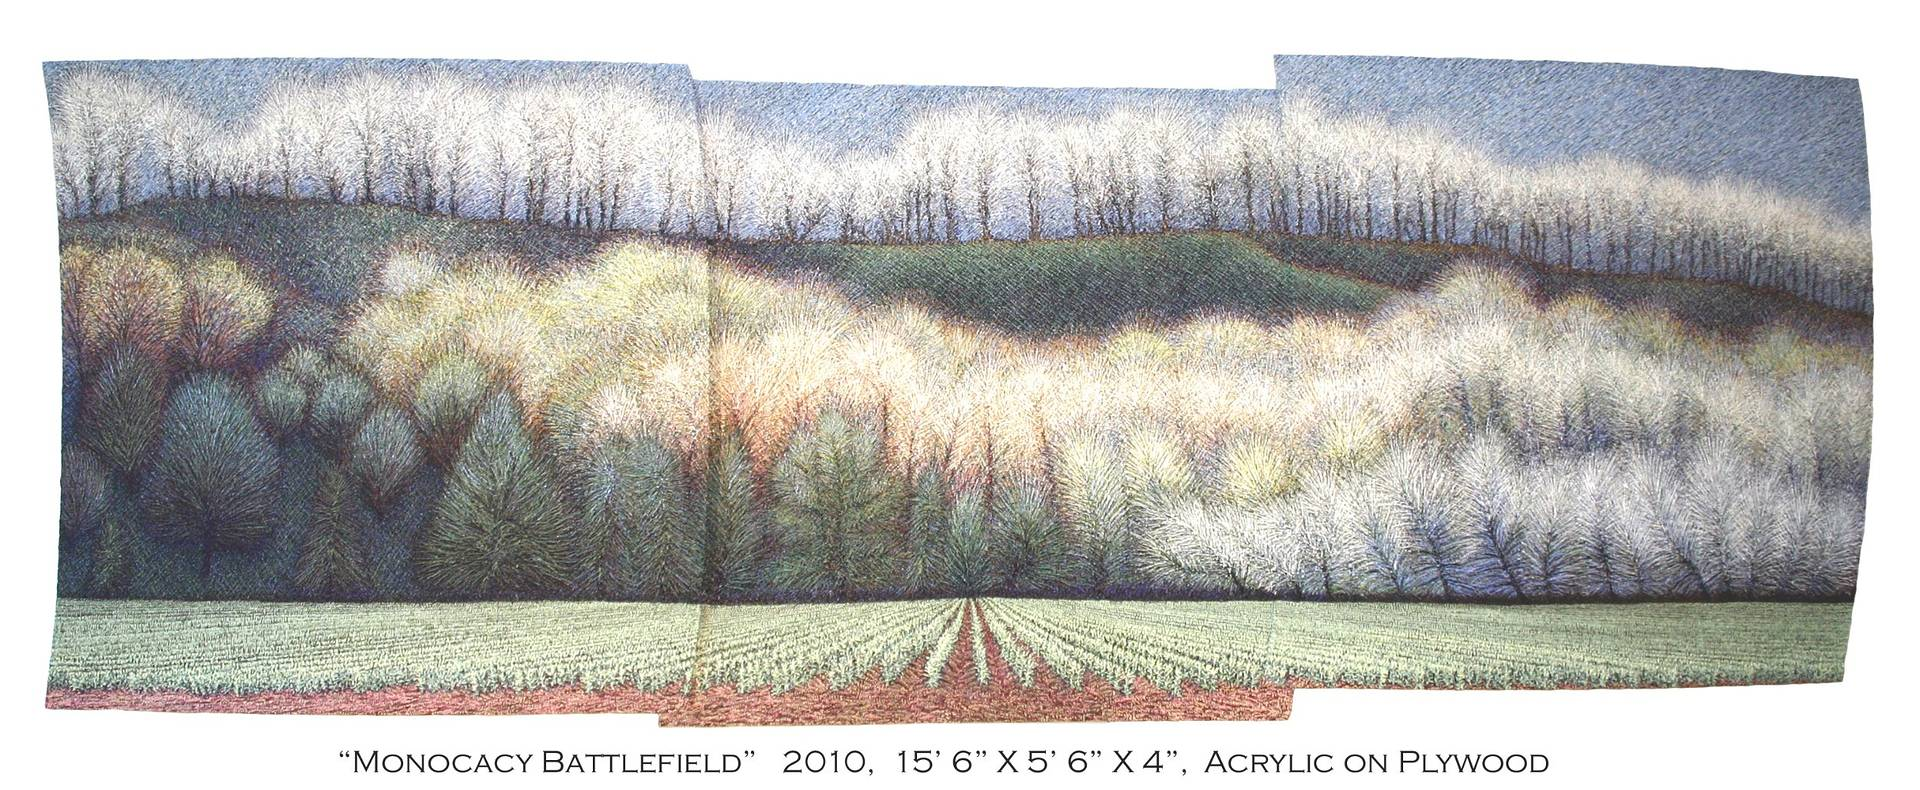 Monocay Battlefield, 2010 by Douglas Moulden